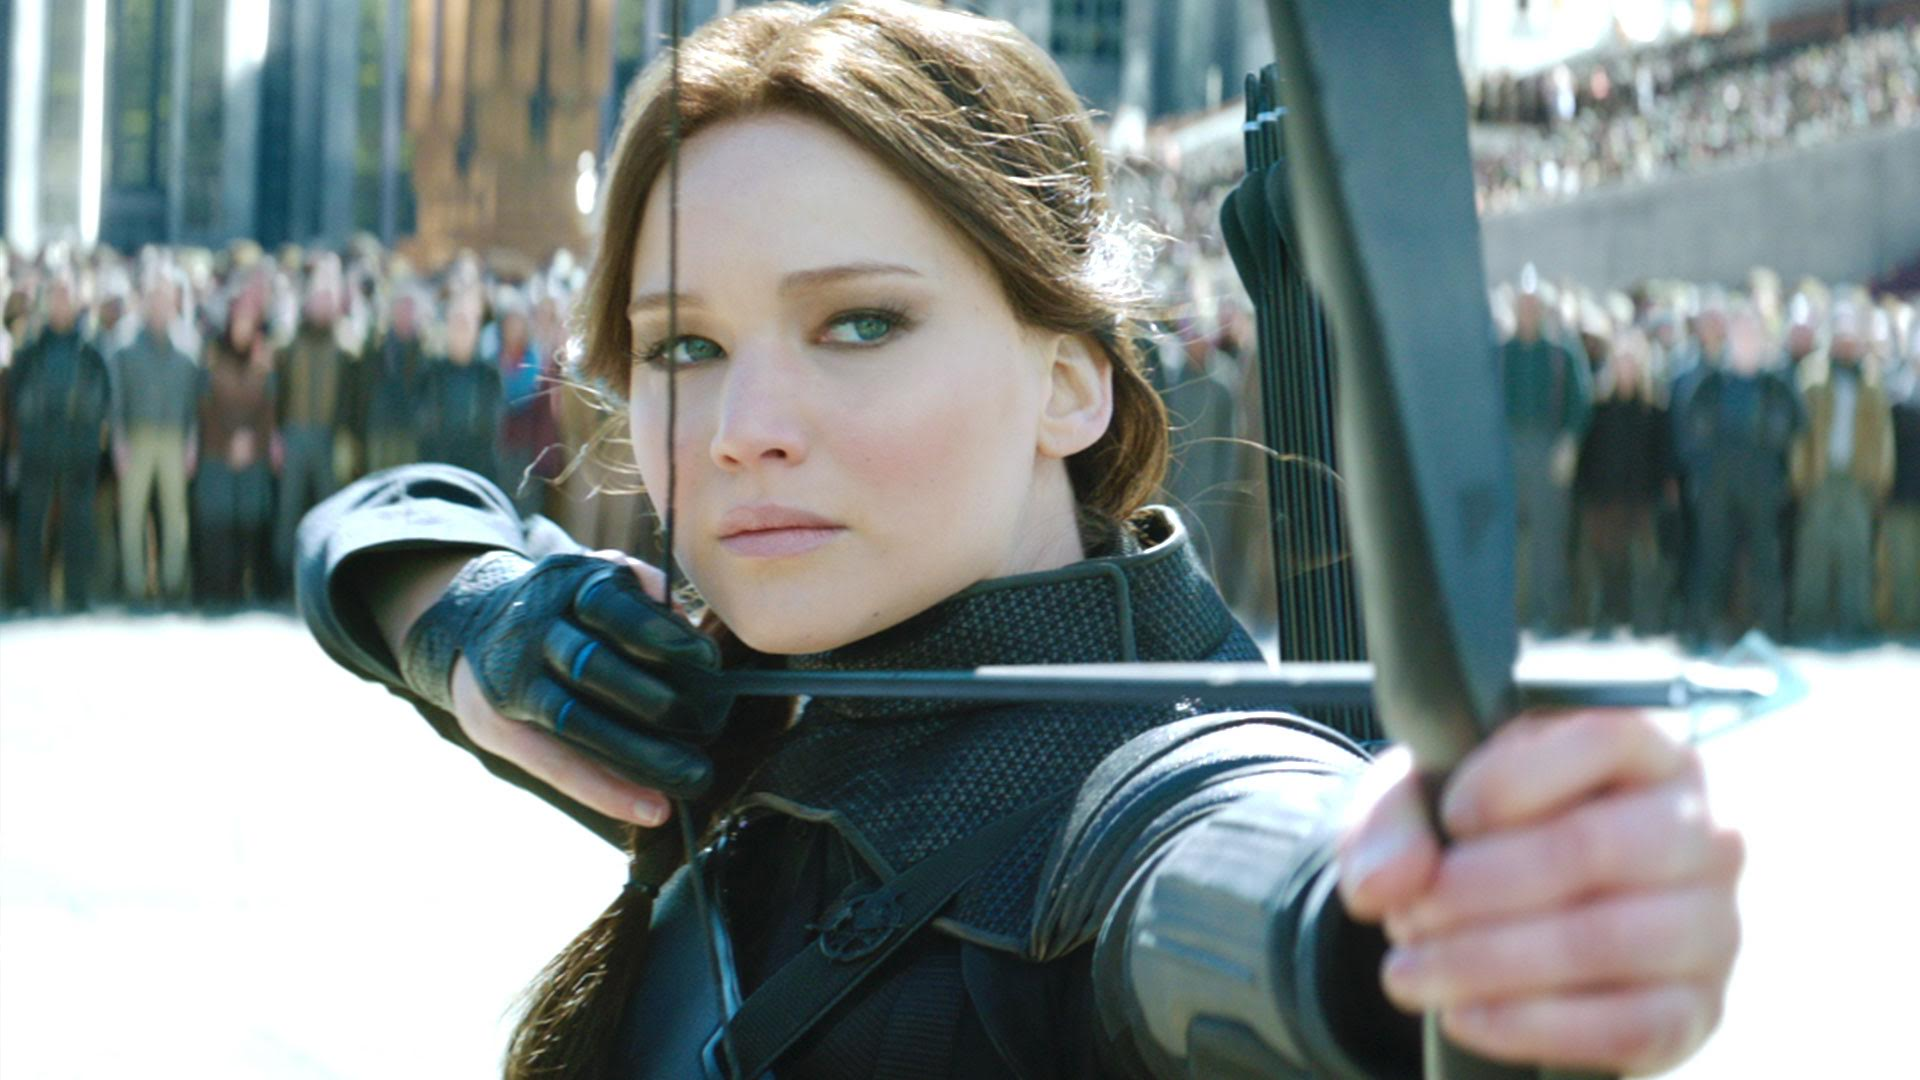 Hunger Games: Mockingjay' Became the Highest-Grossing Film of 2014